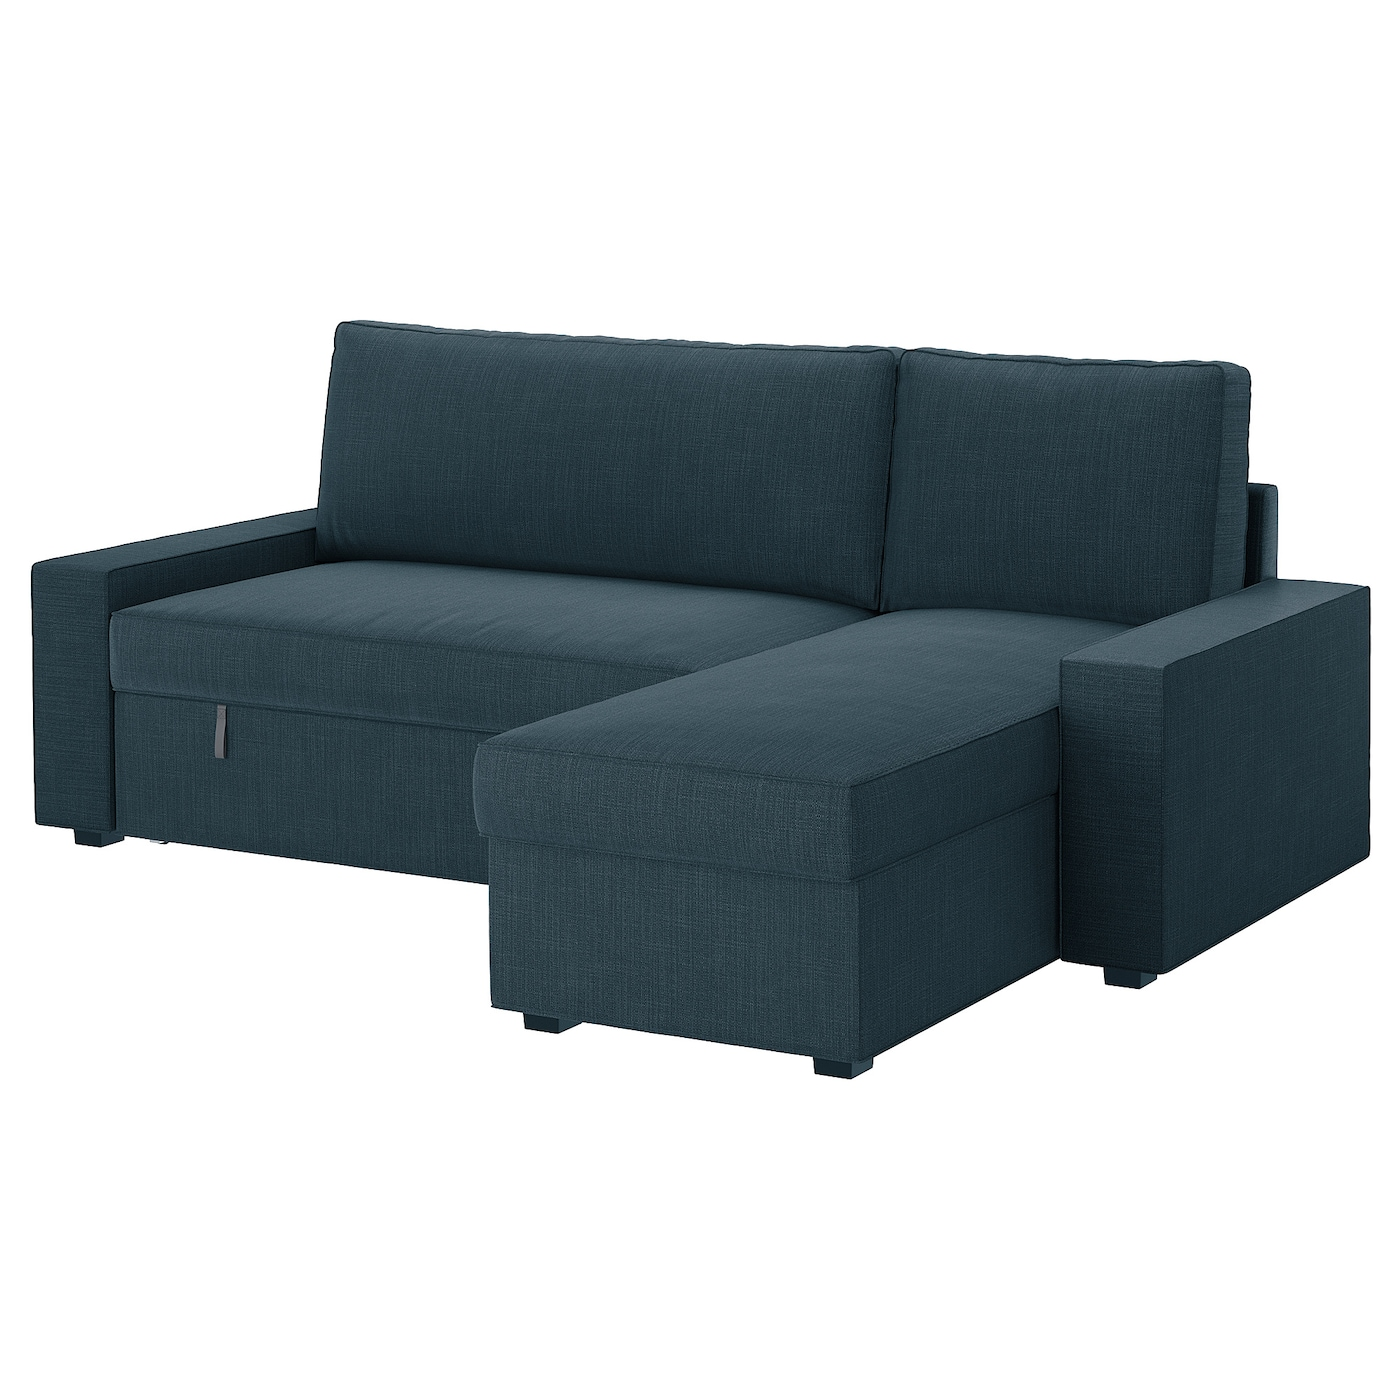 Vilasund sofa bed with chaise longue hillared dark blue ikea for Chaise sofa bed